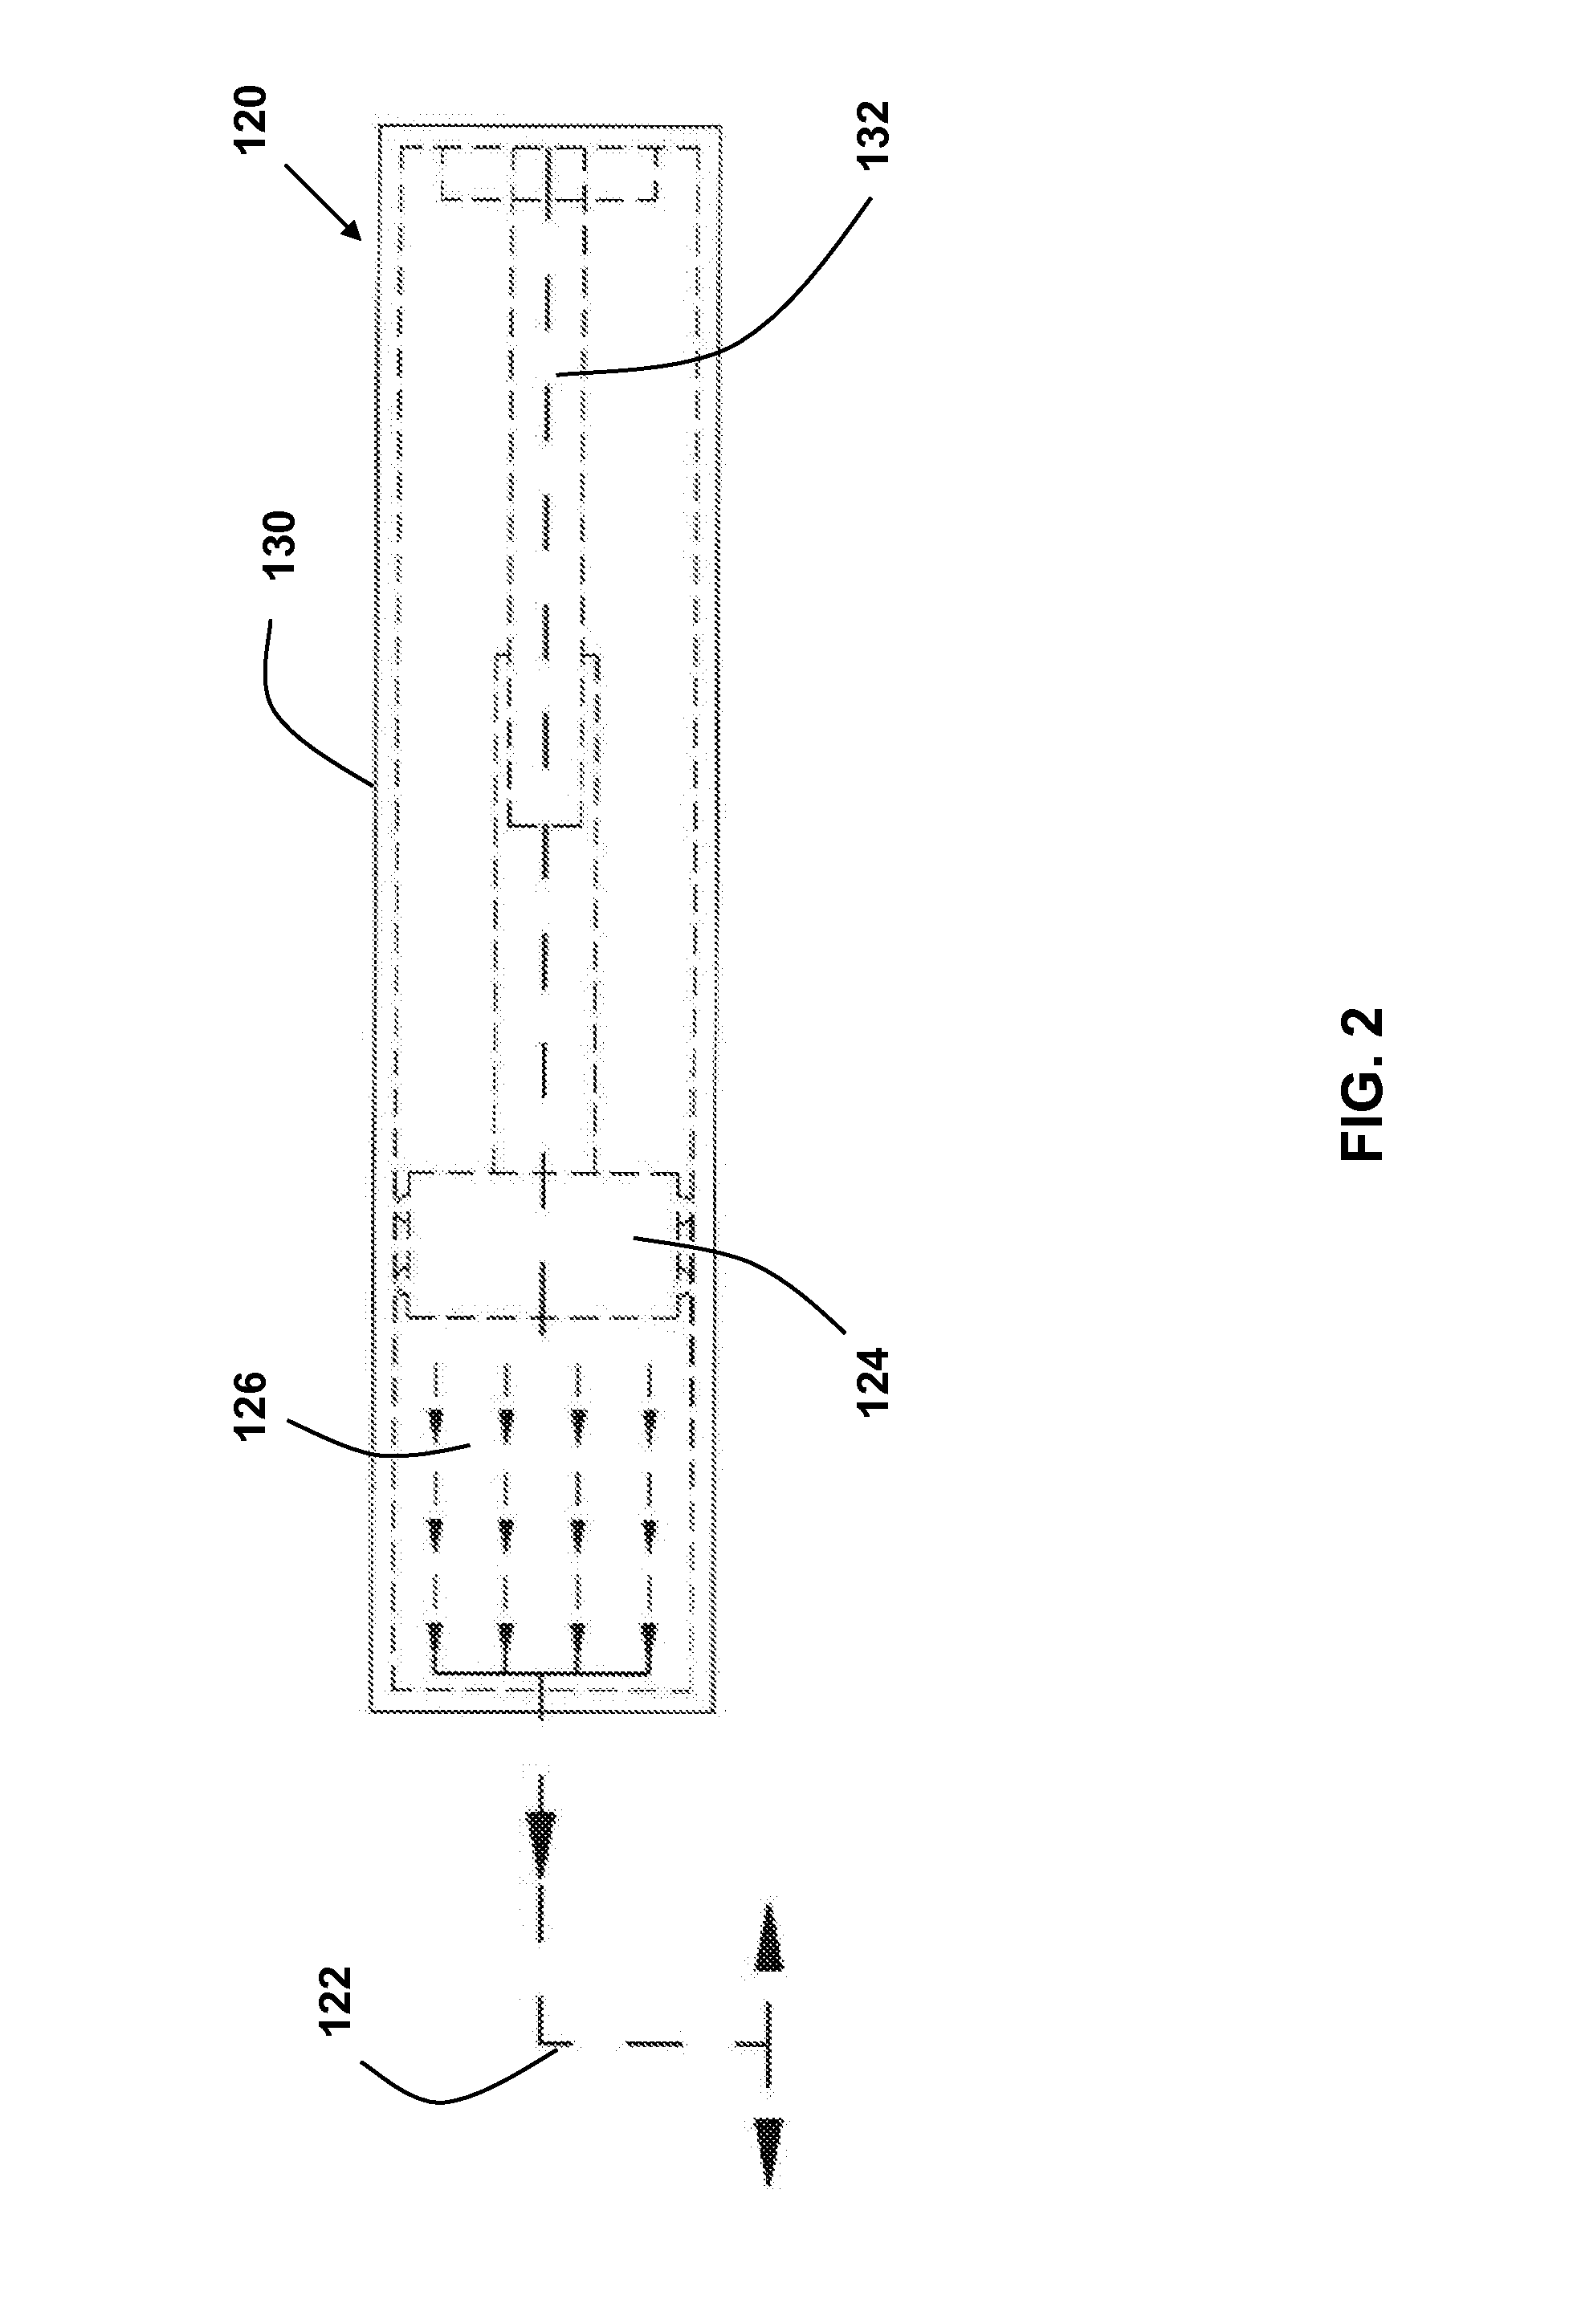 Patente Us20110107674 Device For Sealingly Closing A Room Opening Hyundai Translead Wiring Diagram Patent Drawing